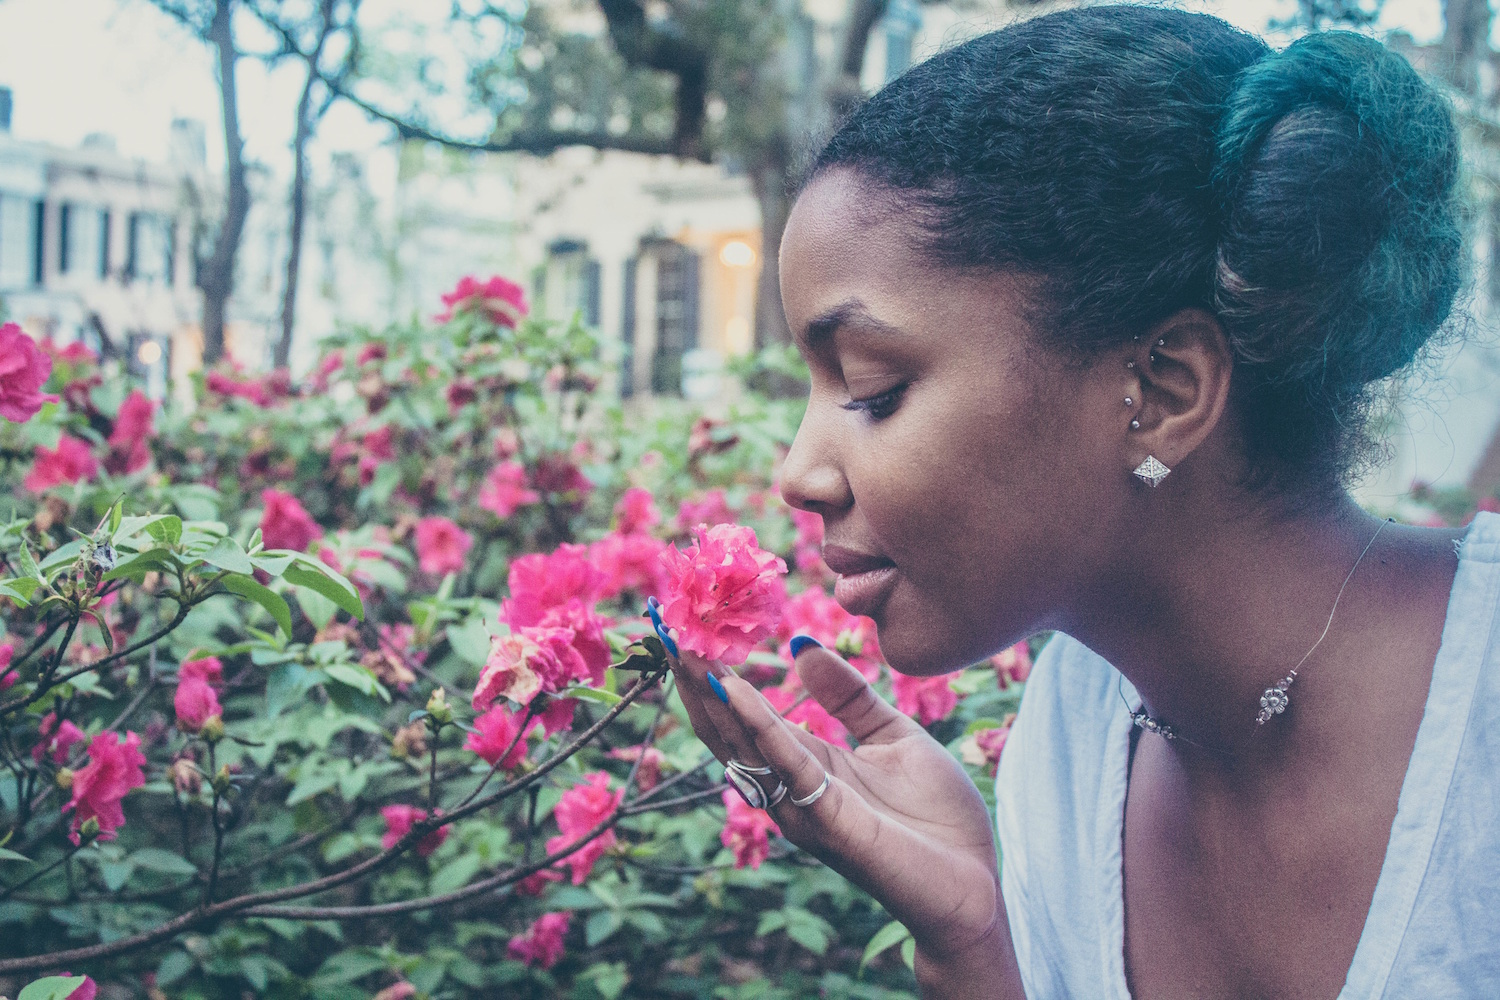 Close up image of a Black woman smelling a pink flower